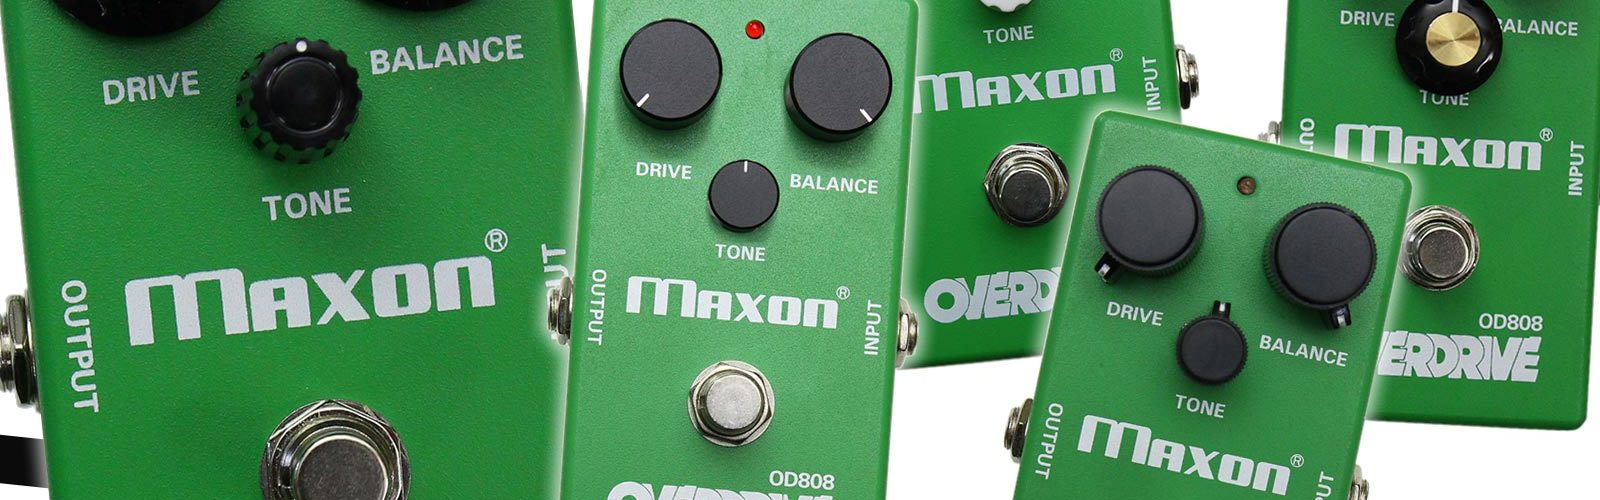 Maxon OD808 Limited Edition 40th Anniversary Overdrive V2 pedal